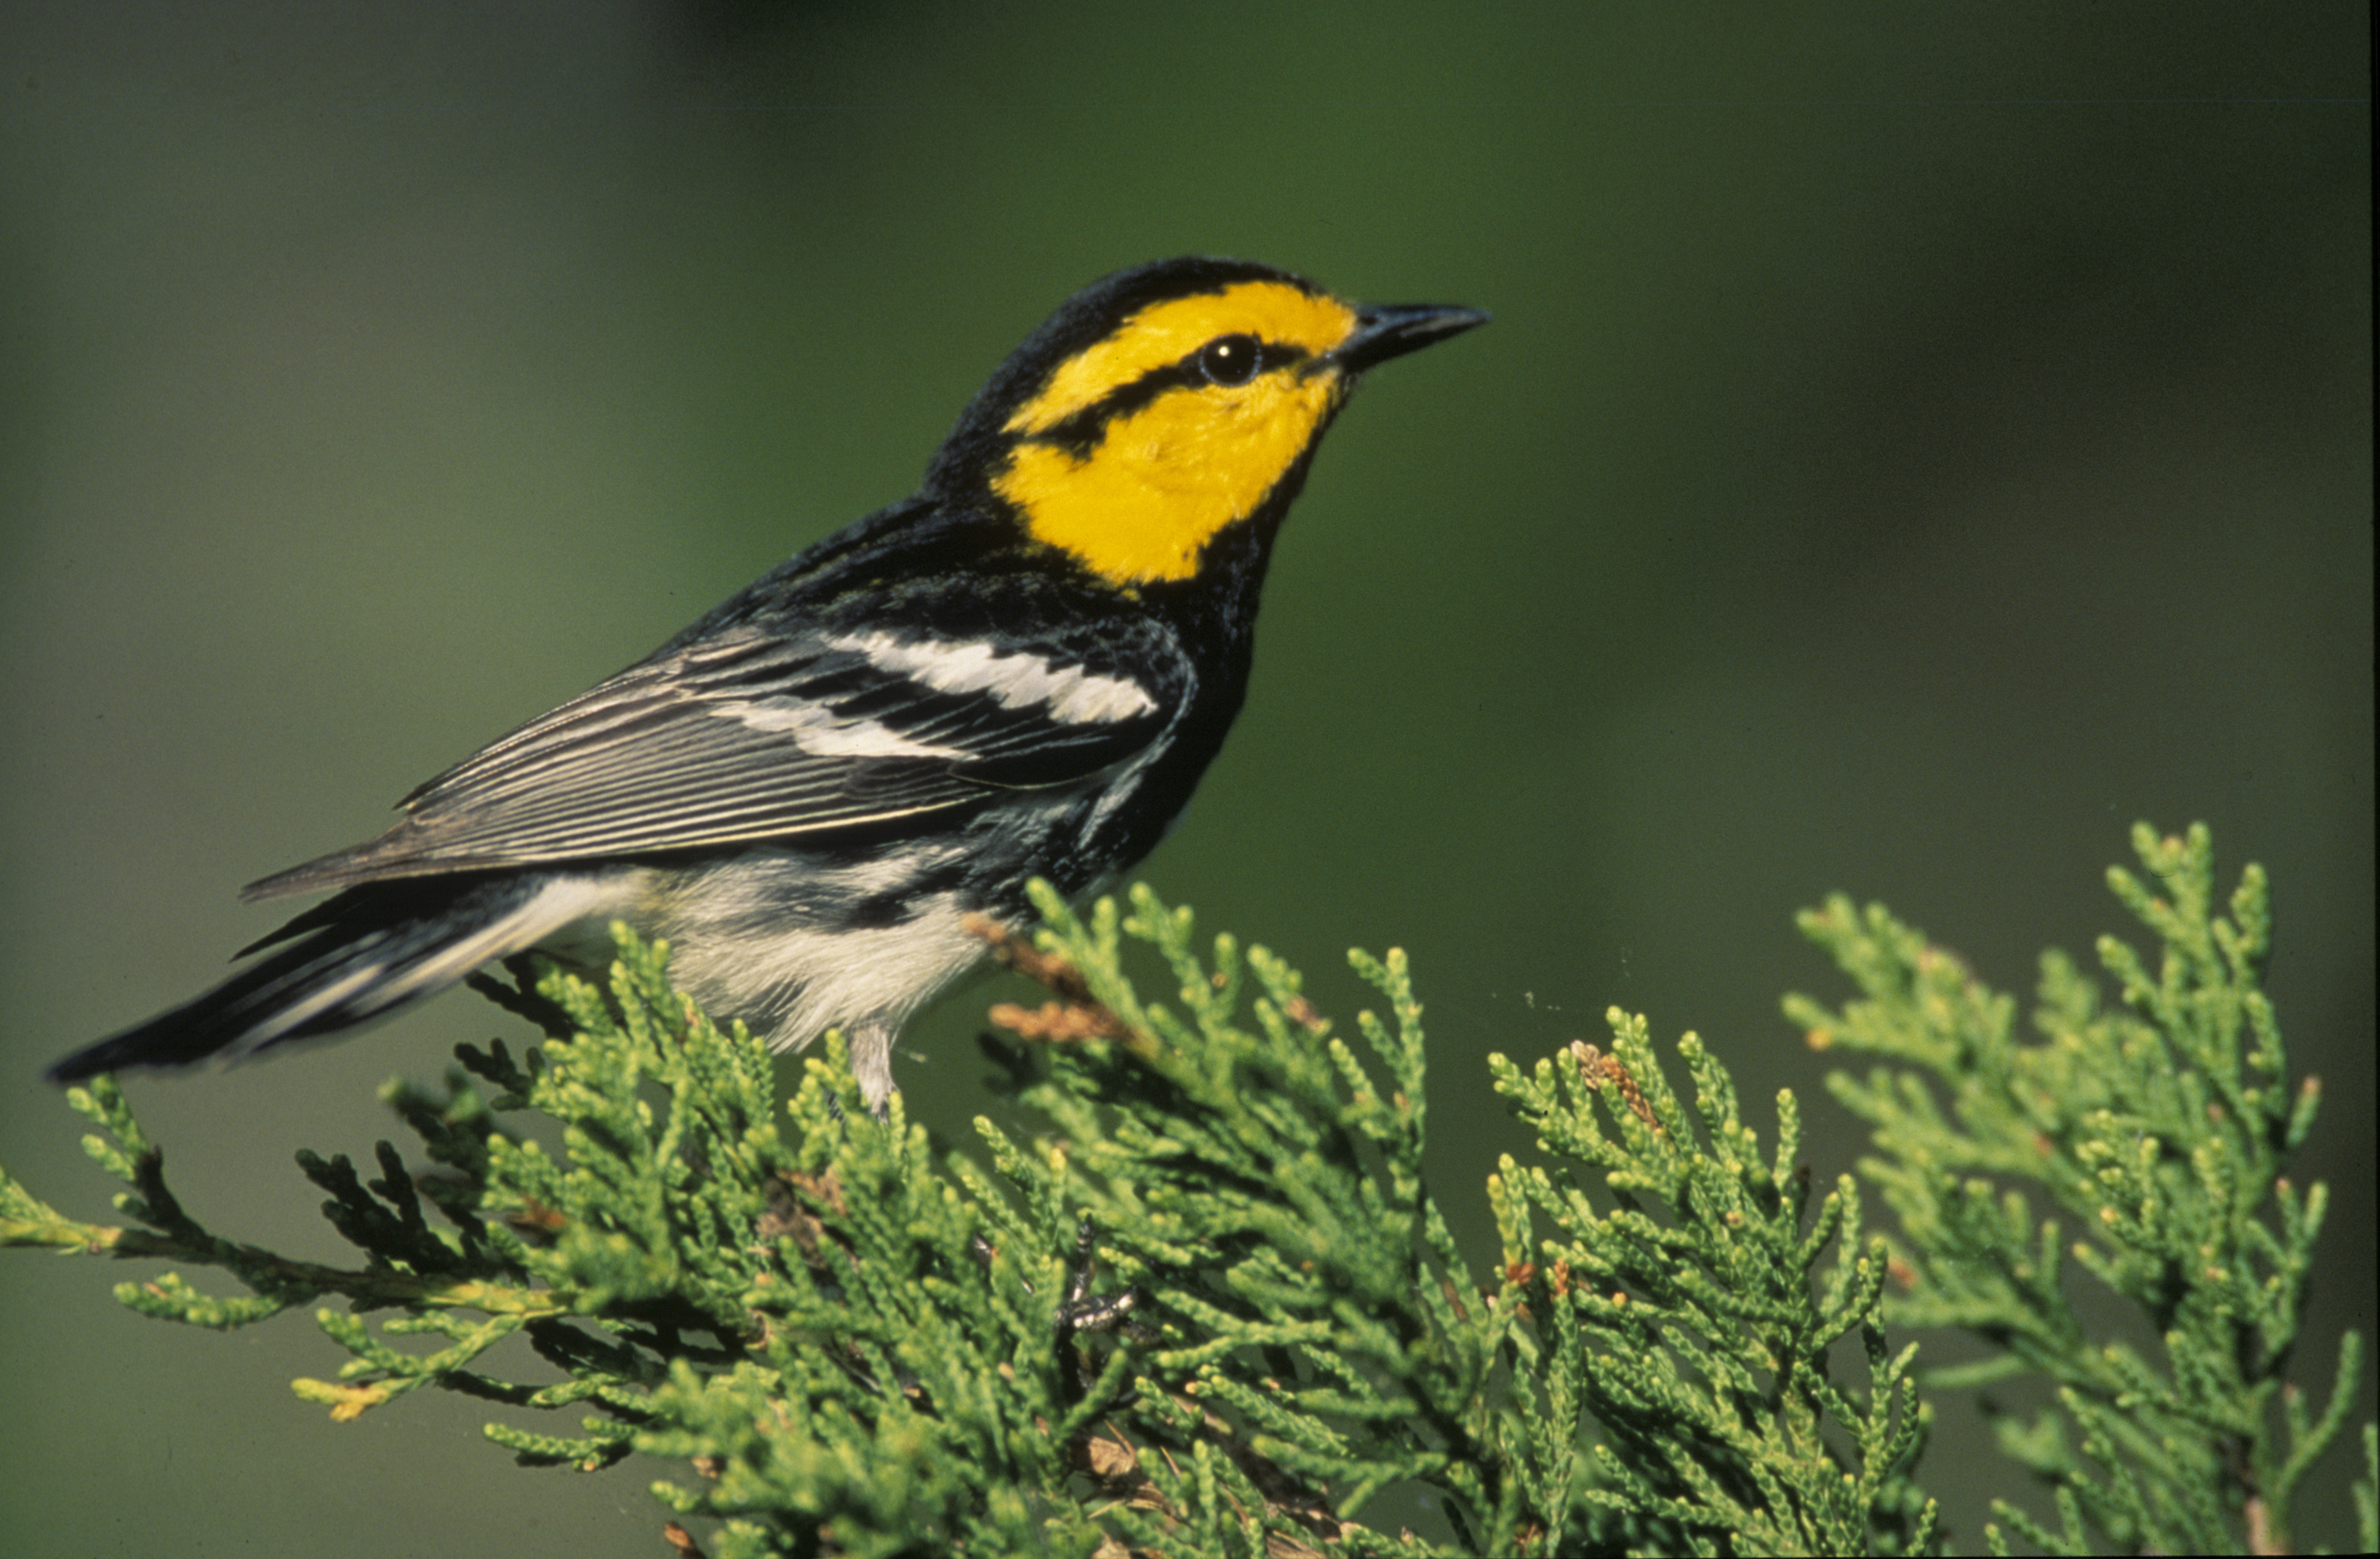 Conservation Easement to provide permanent protection for the Golden Cheeked Warbler